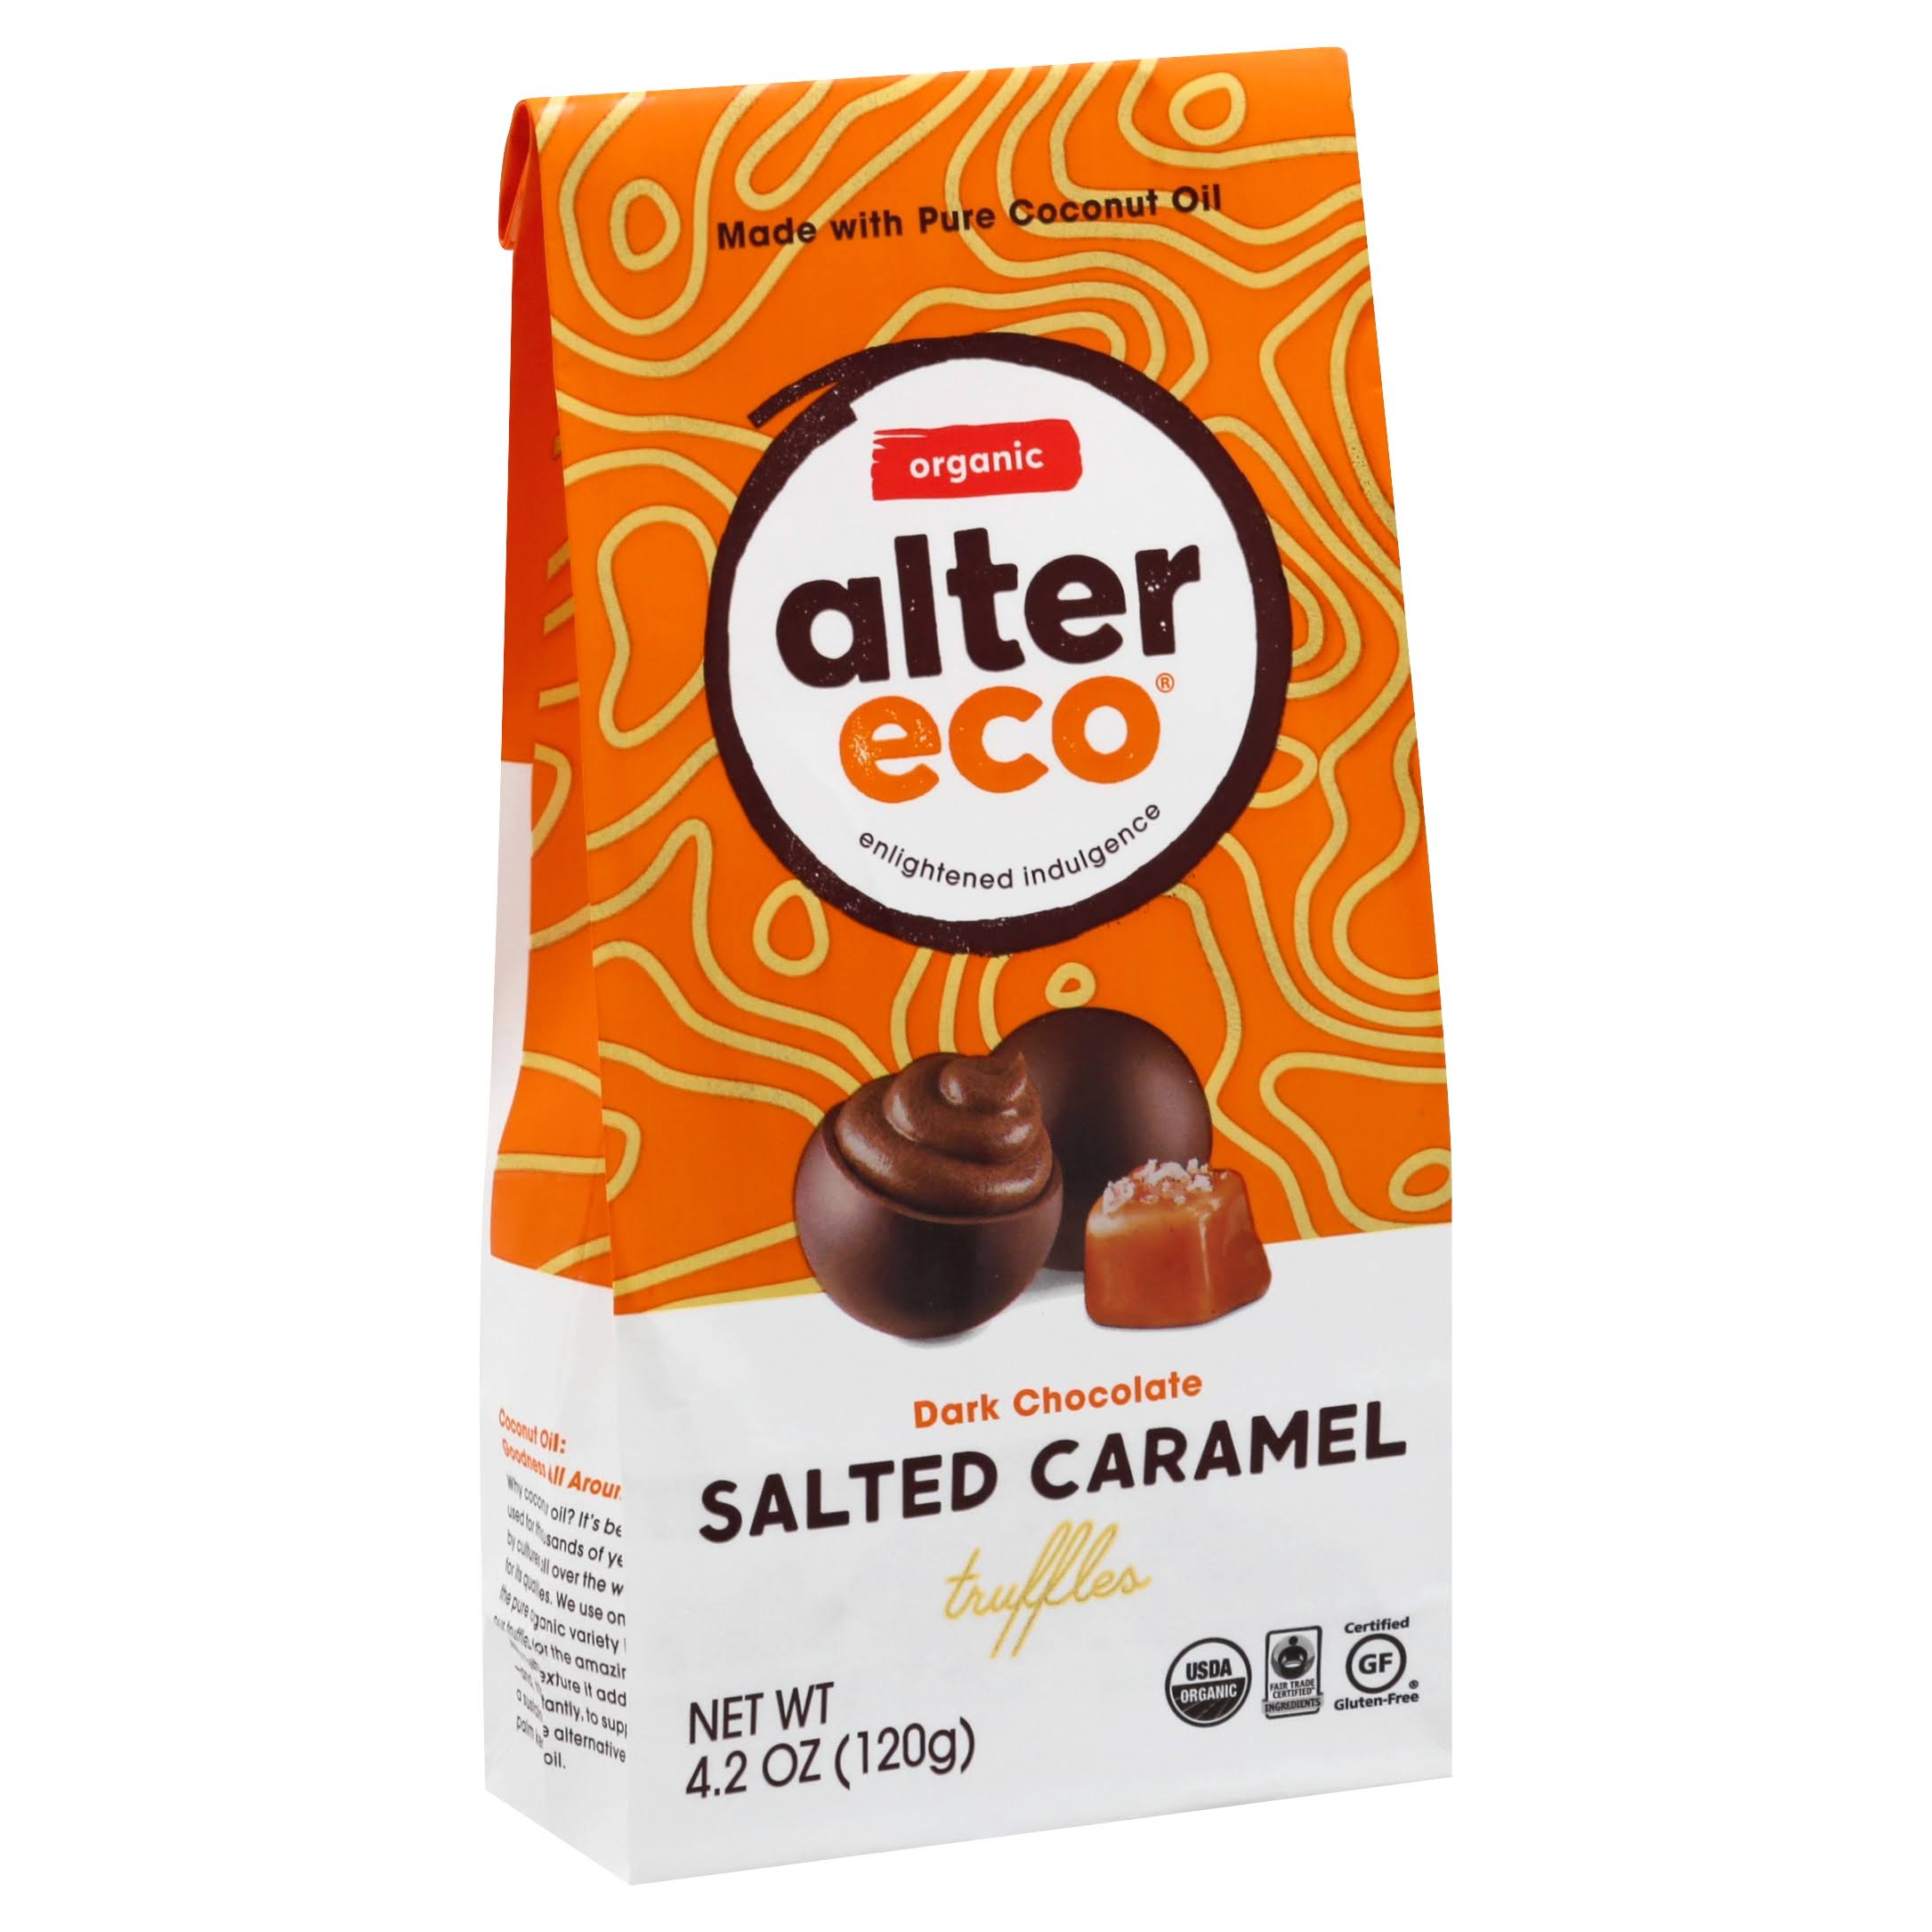 Alter Eco Organic Salted Caramel Truffle - 10 Pack, Dark Chocolate